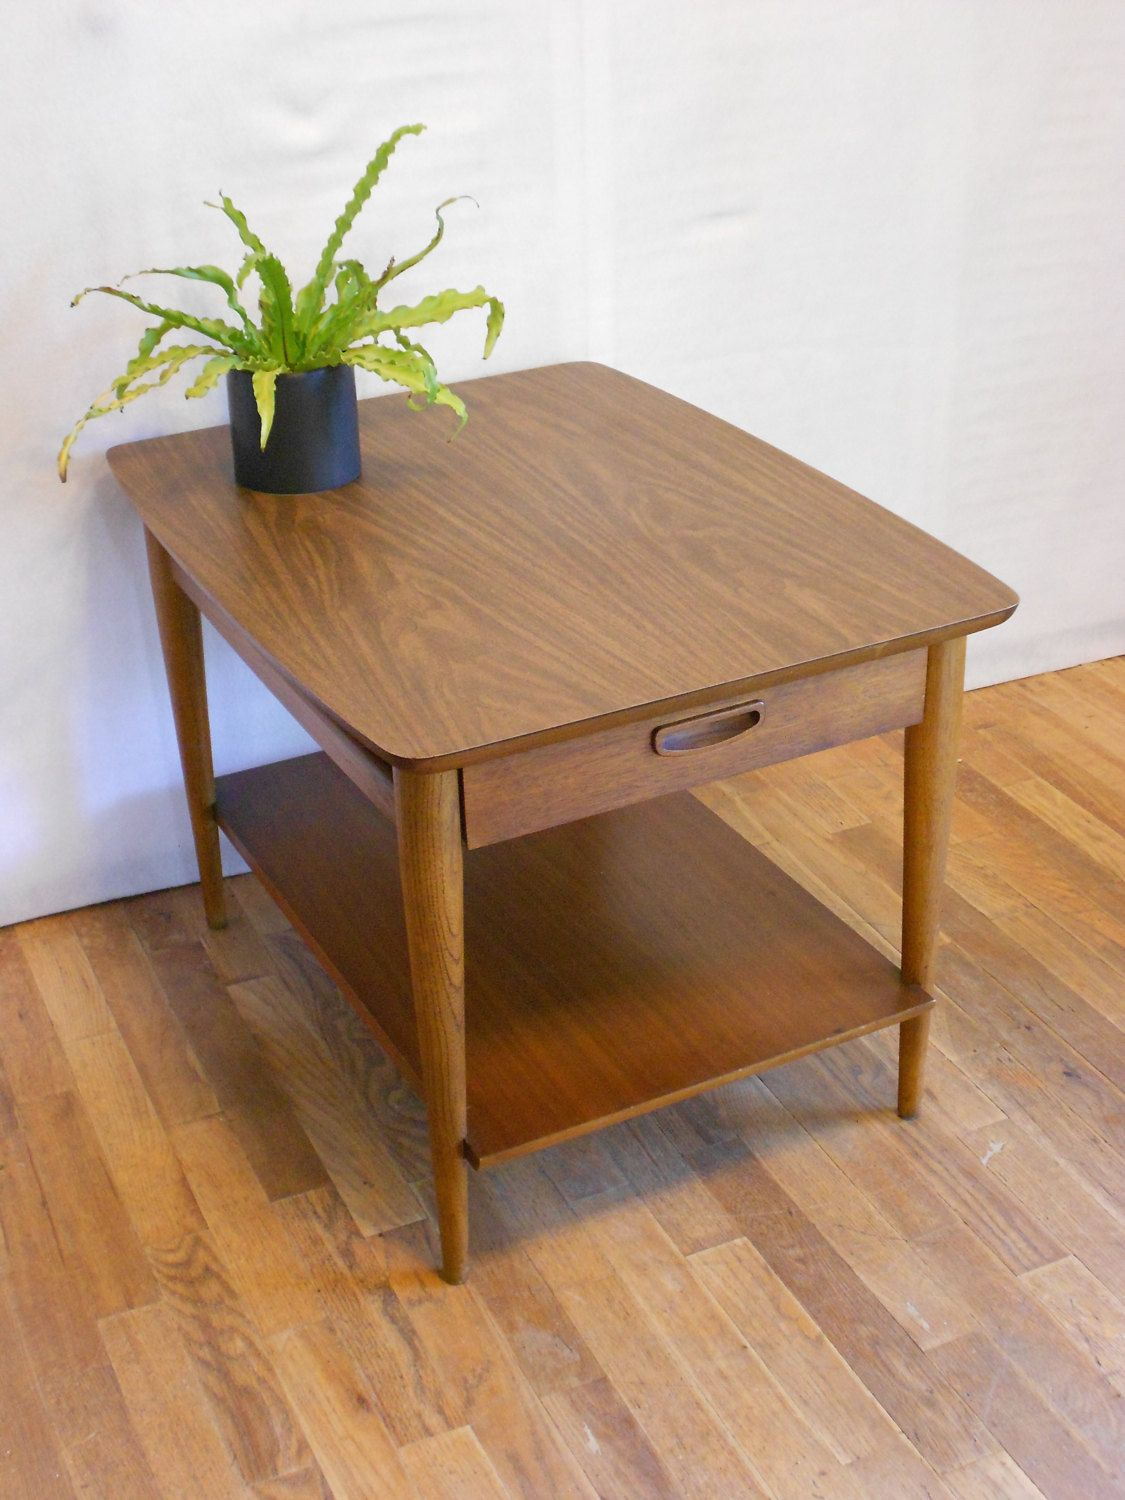 Reserved For IVY Lane Walnut Side Table With Drawer SkieShop - Walnut side table with drawer